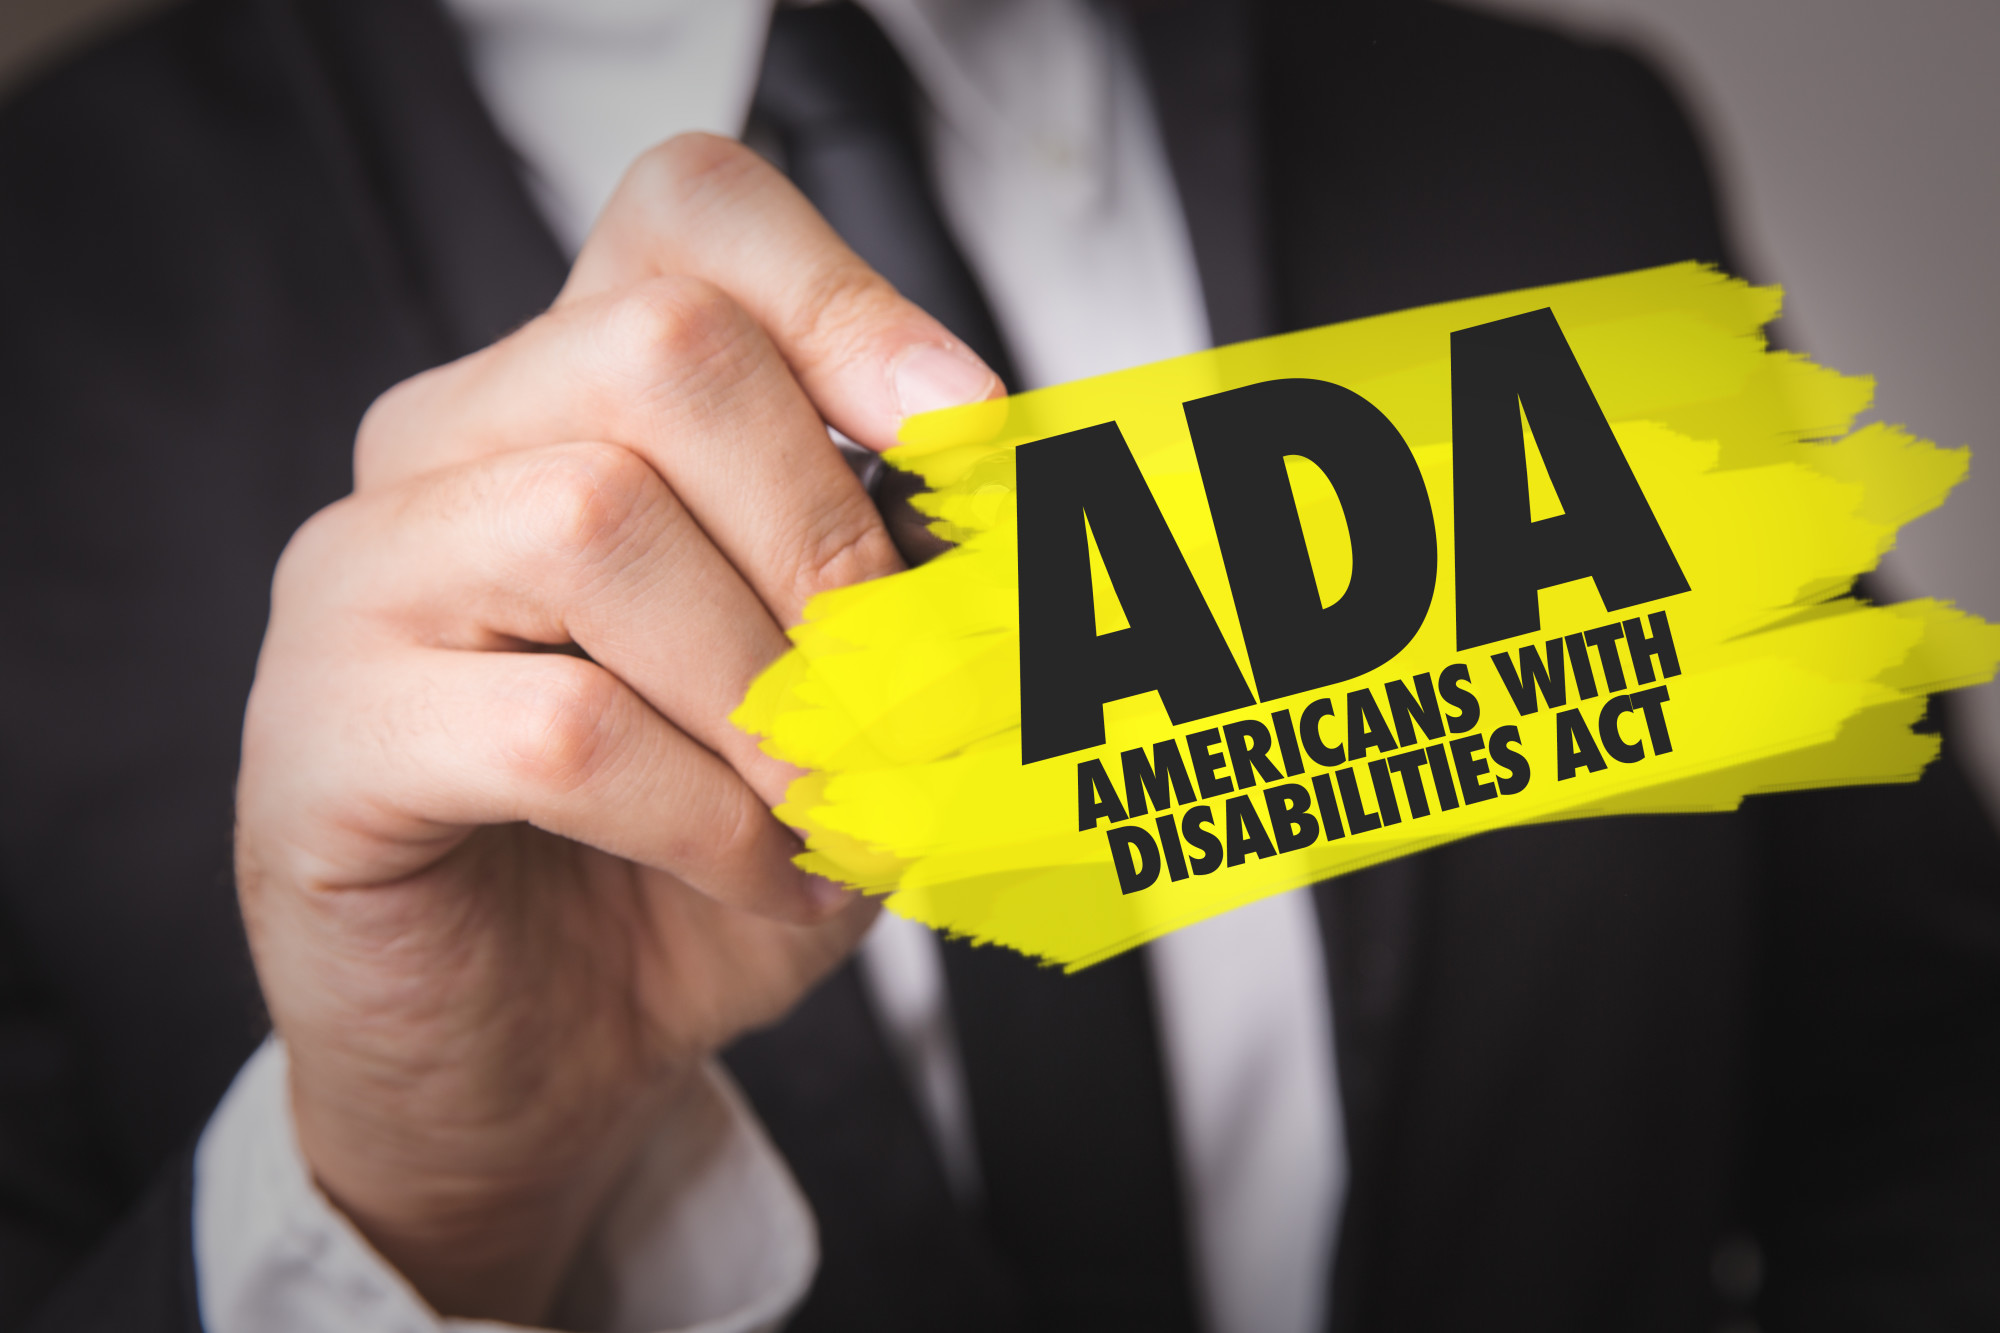 10 Common Facts About ADA Website Compliance to Help Your Website